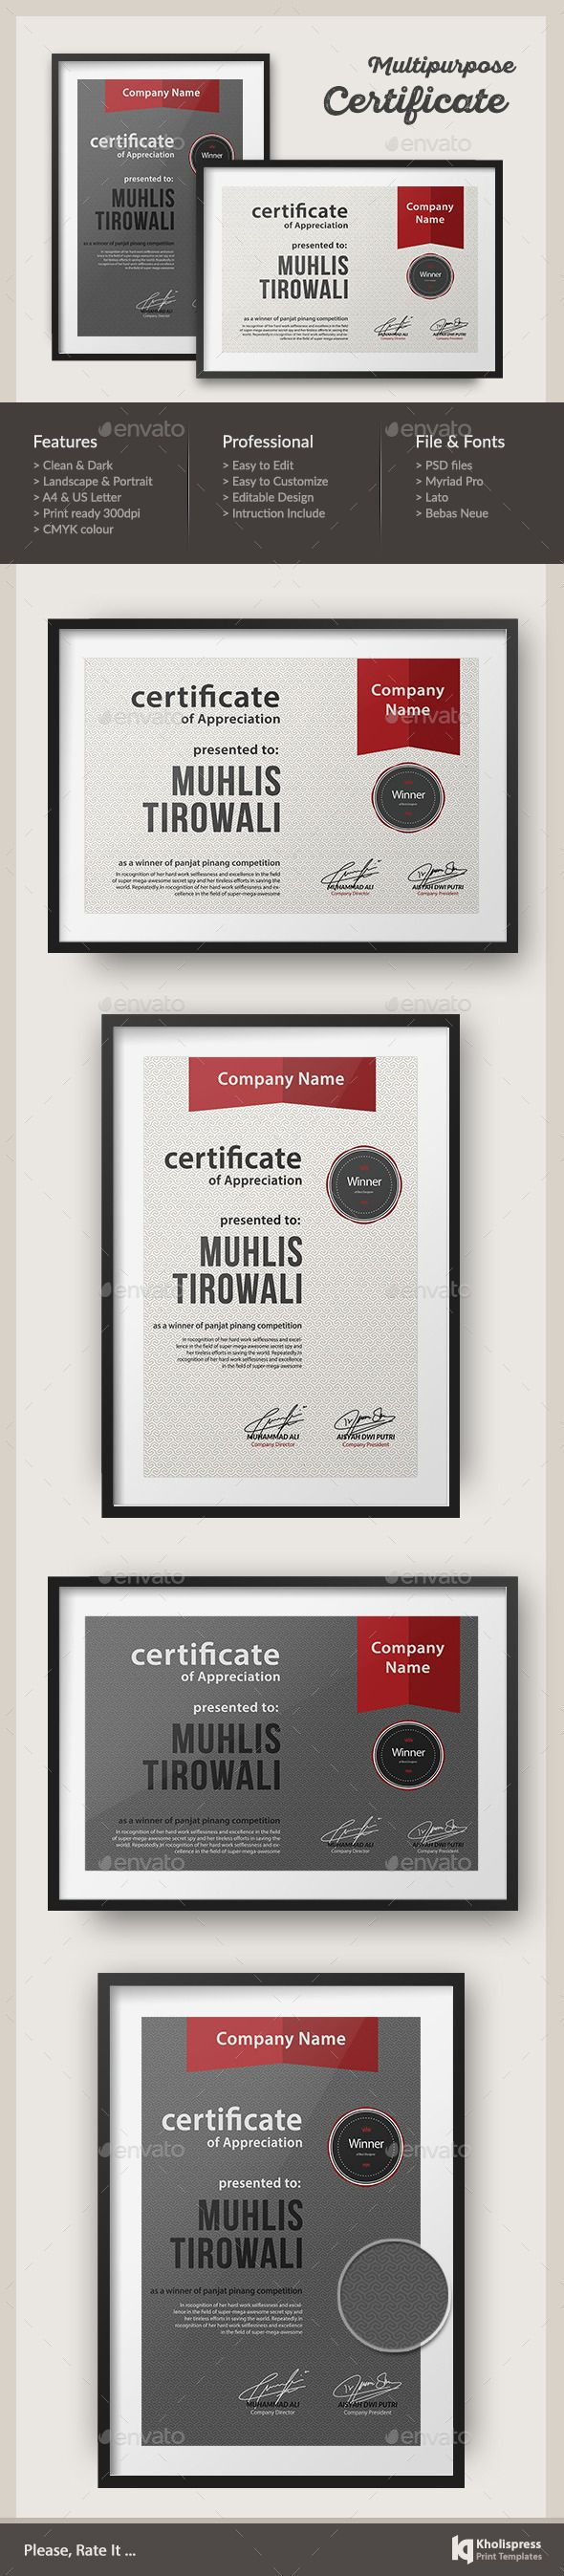 Best 25 certificate layout ideas on pinterest certificate pattern certificate letter templatespsd yelopaper Choice Image